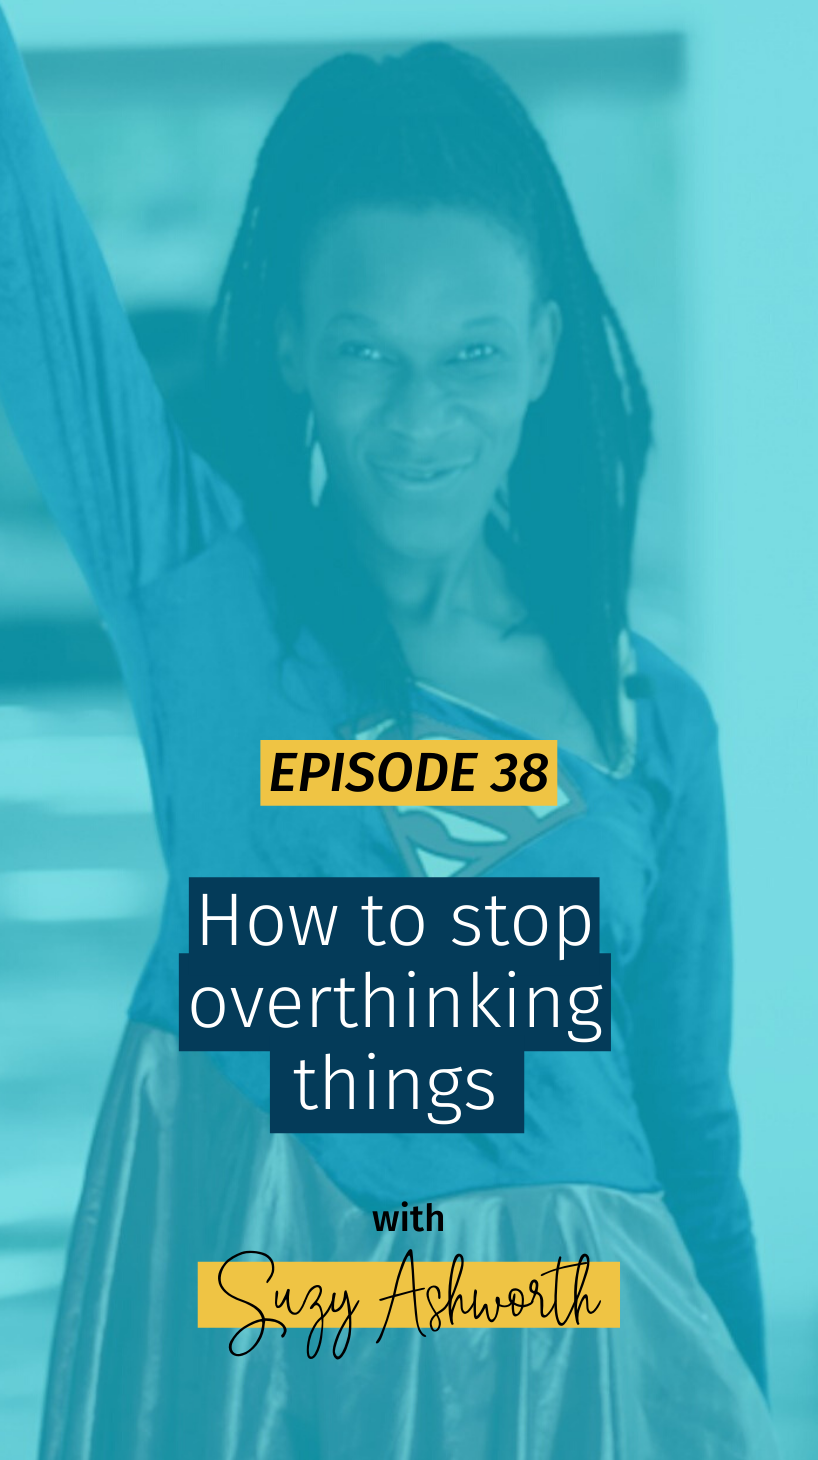 038 How to stop overthinking things